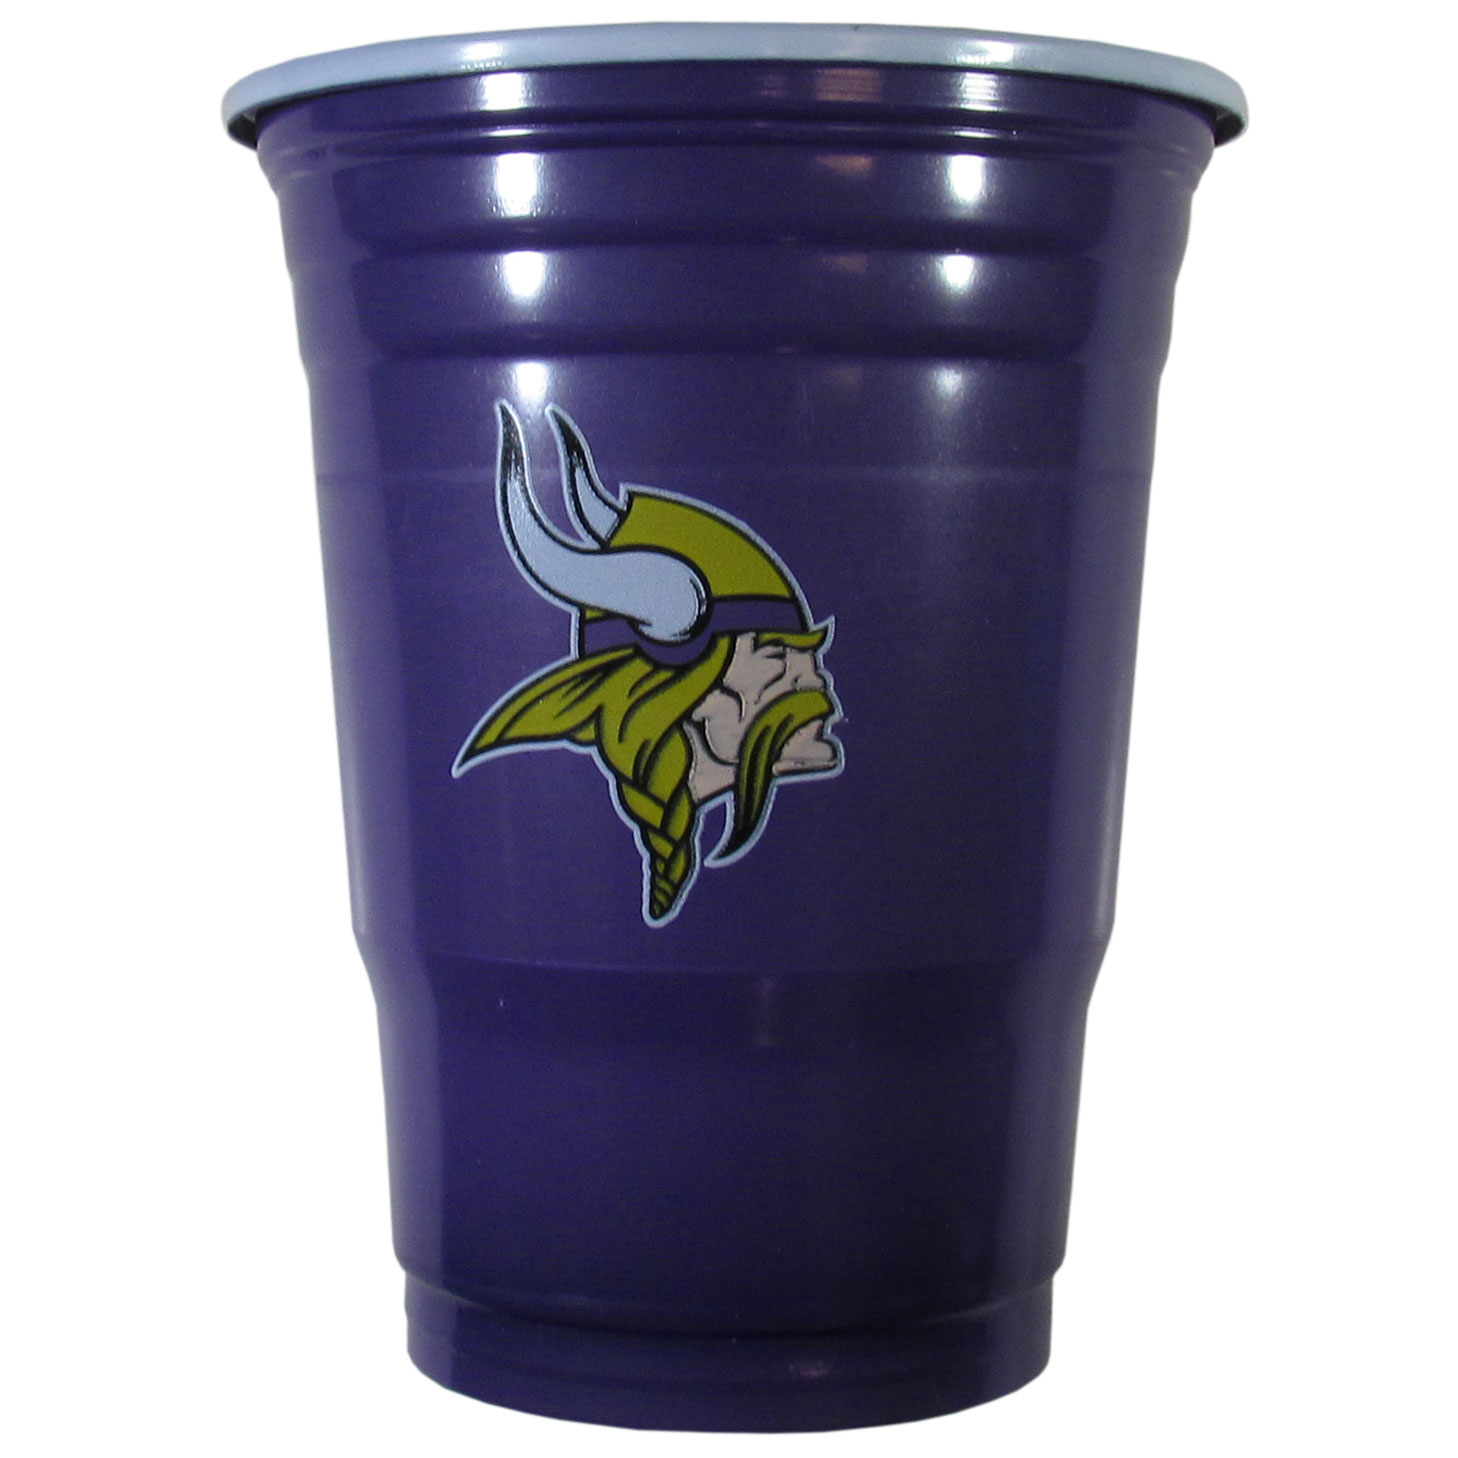 Minnesota Vikings Plastic Game Day Cups - Our 18 ounce game day cups are what every tailgating or backyard events needs! The cups feature a big Minnesota Vikings logo so you can show off your team pride. The popular 18 ounce size is perfect for drinks or ping pong balls! Sold in sleeves of 18 cups.